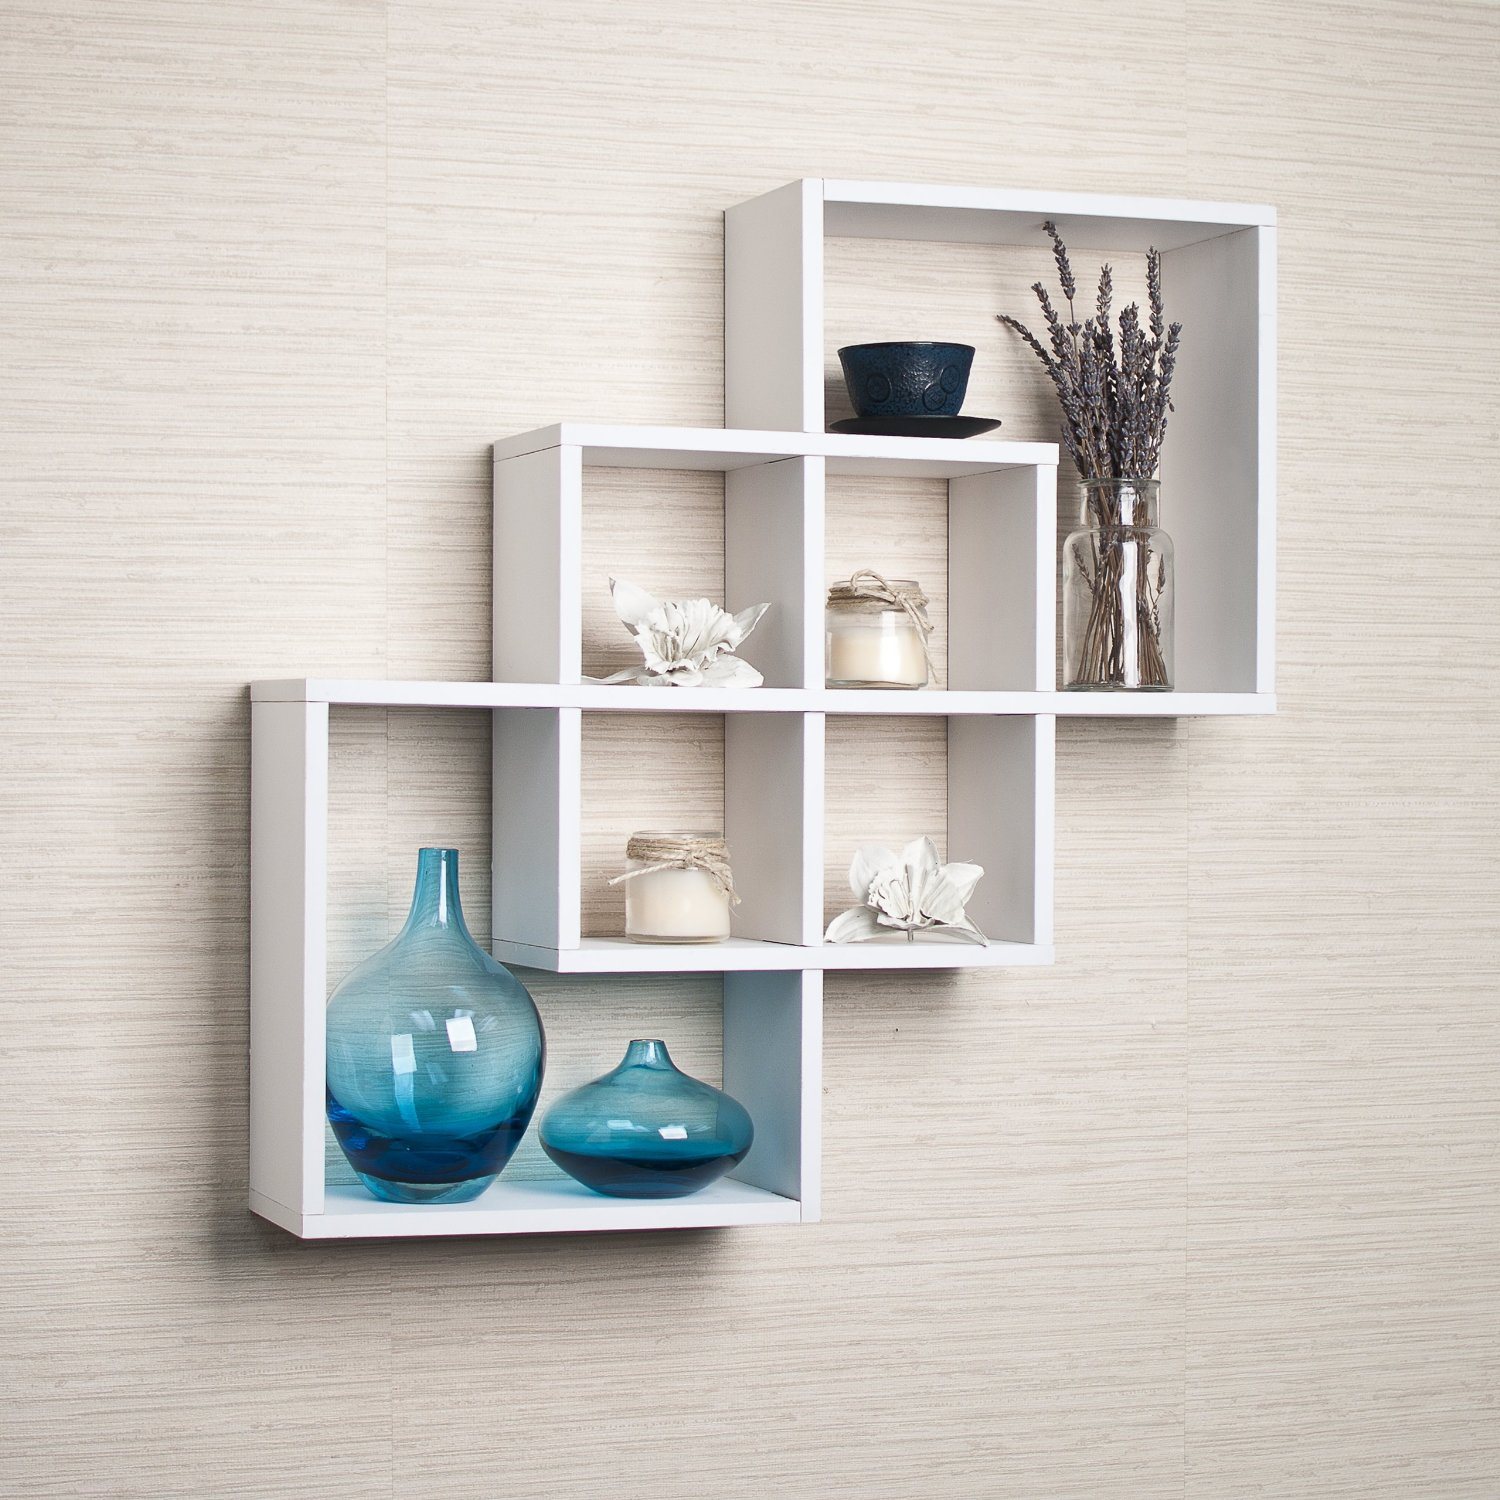 top white floating shelves for home interiors intersecting shelf inch deep your unit boot hangers ikea lack wall shoe drawer cabinet reclaimed wood beam base kitchen cabinets slim